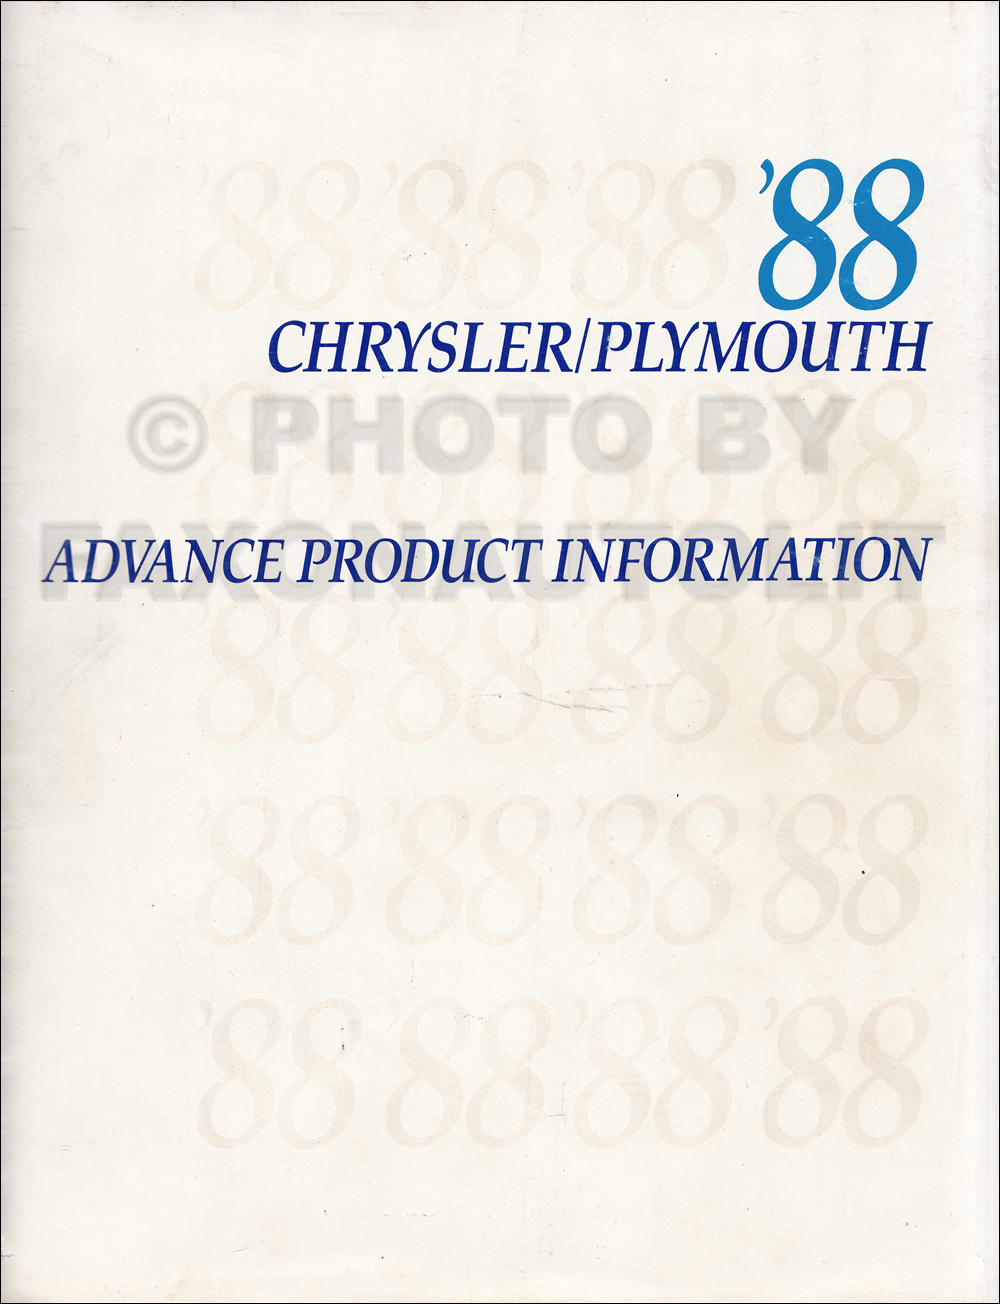 1988 Chrysler Plymouth Advance Color and Upholstery Album and Data Book Original